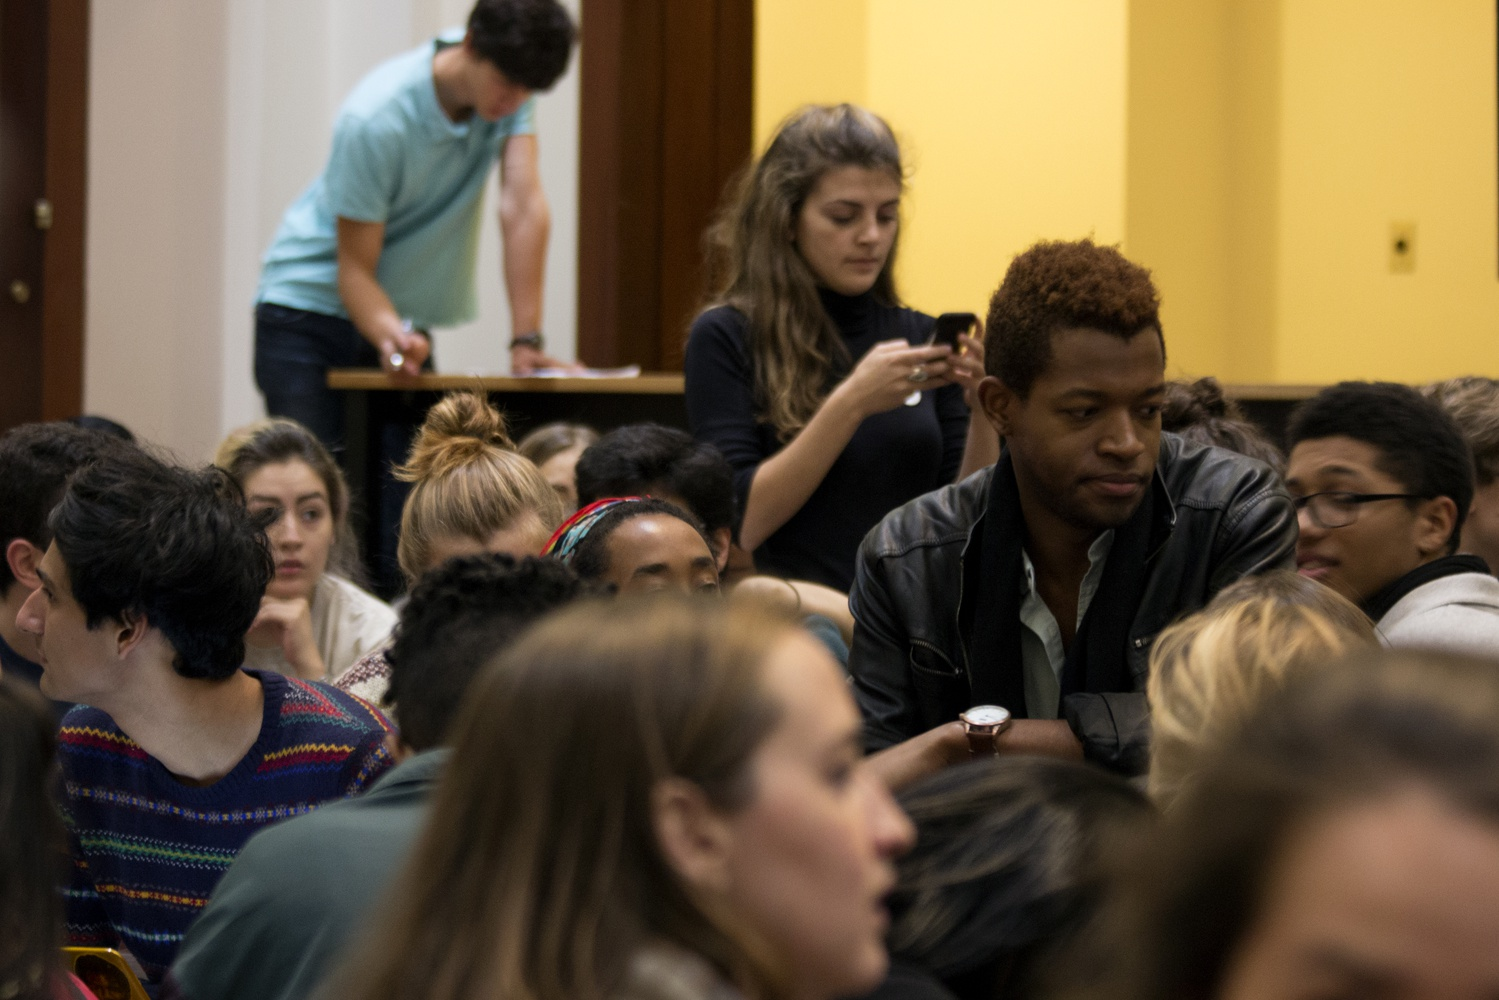 Jonathan S. Roberts '17 led the sit-in at 124 Mount Auburn Street.